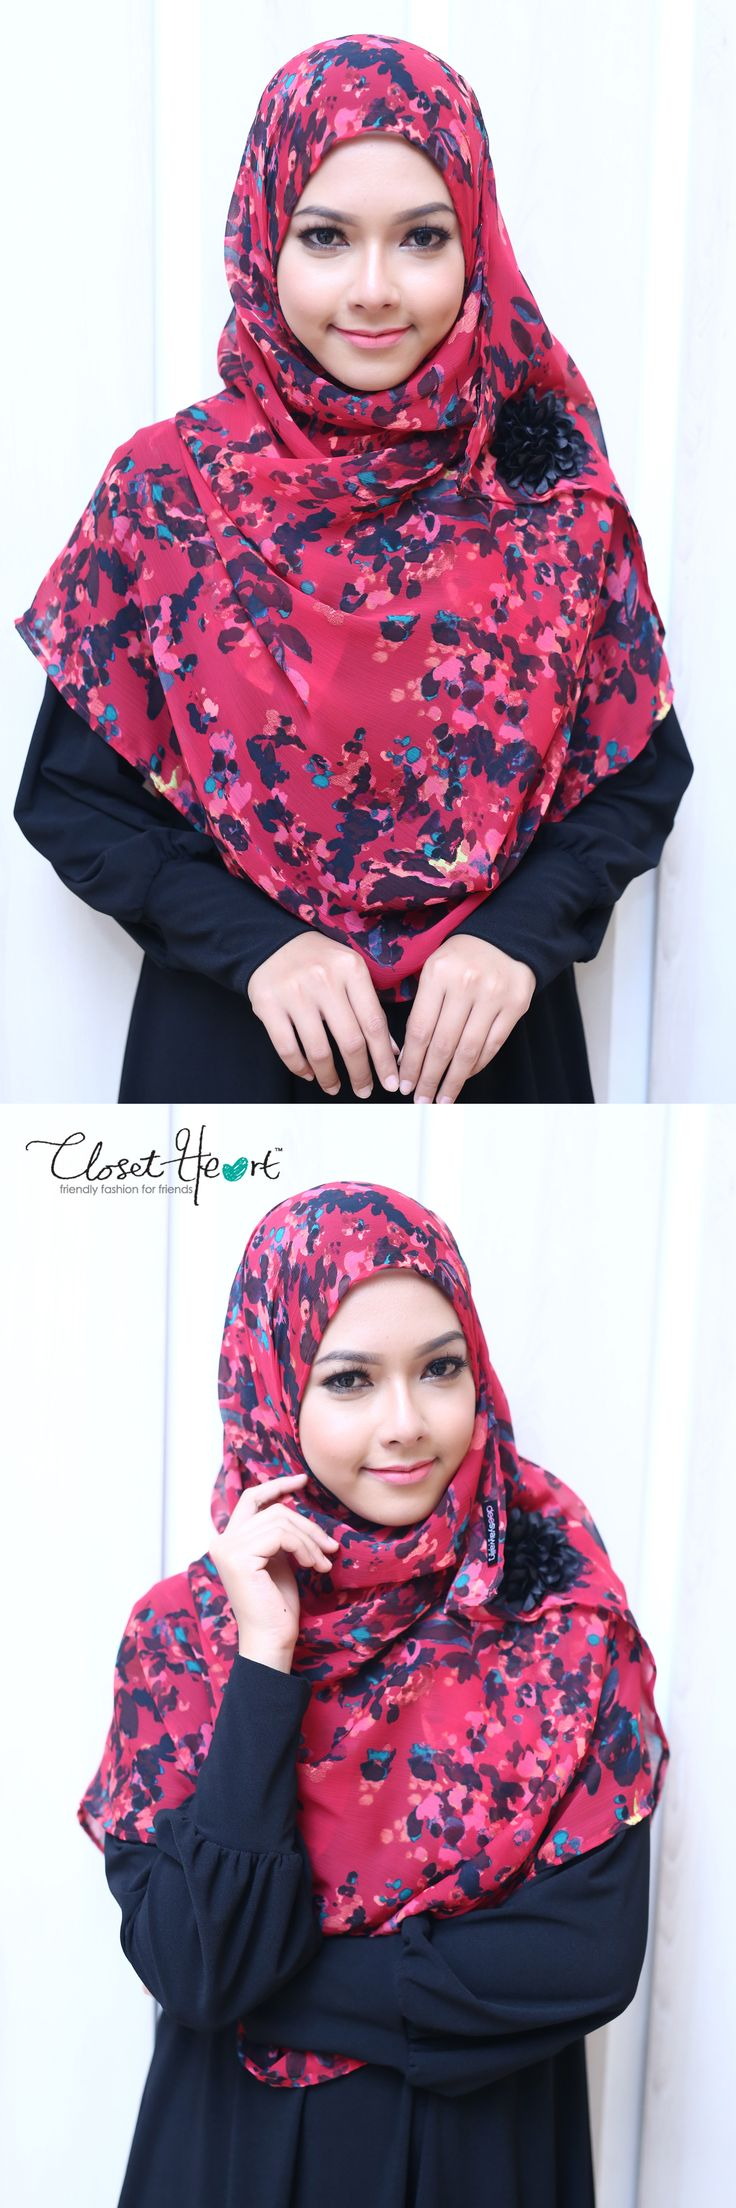 Model Hijab Closet Heart Facebook: Closet Heart Official Instagram: Closet Heart